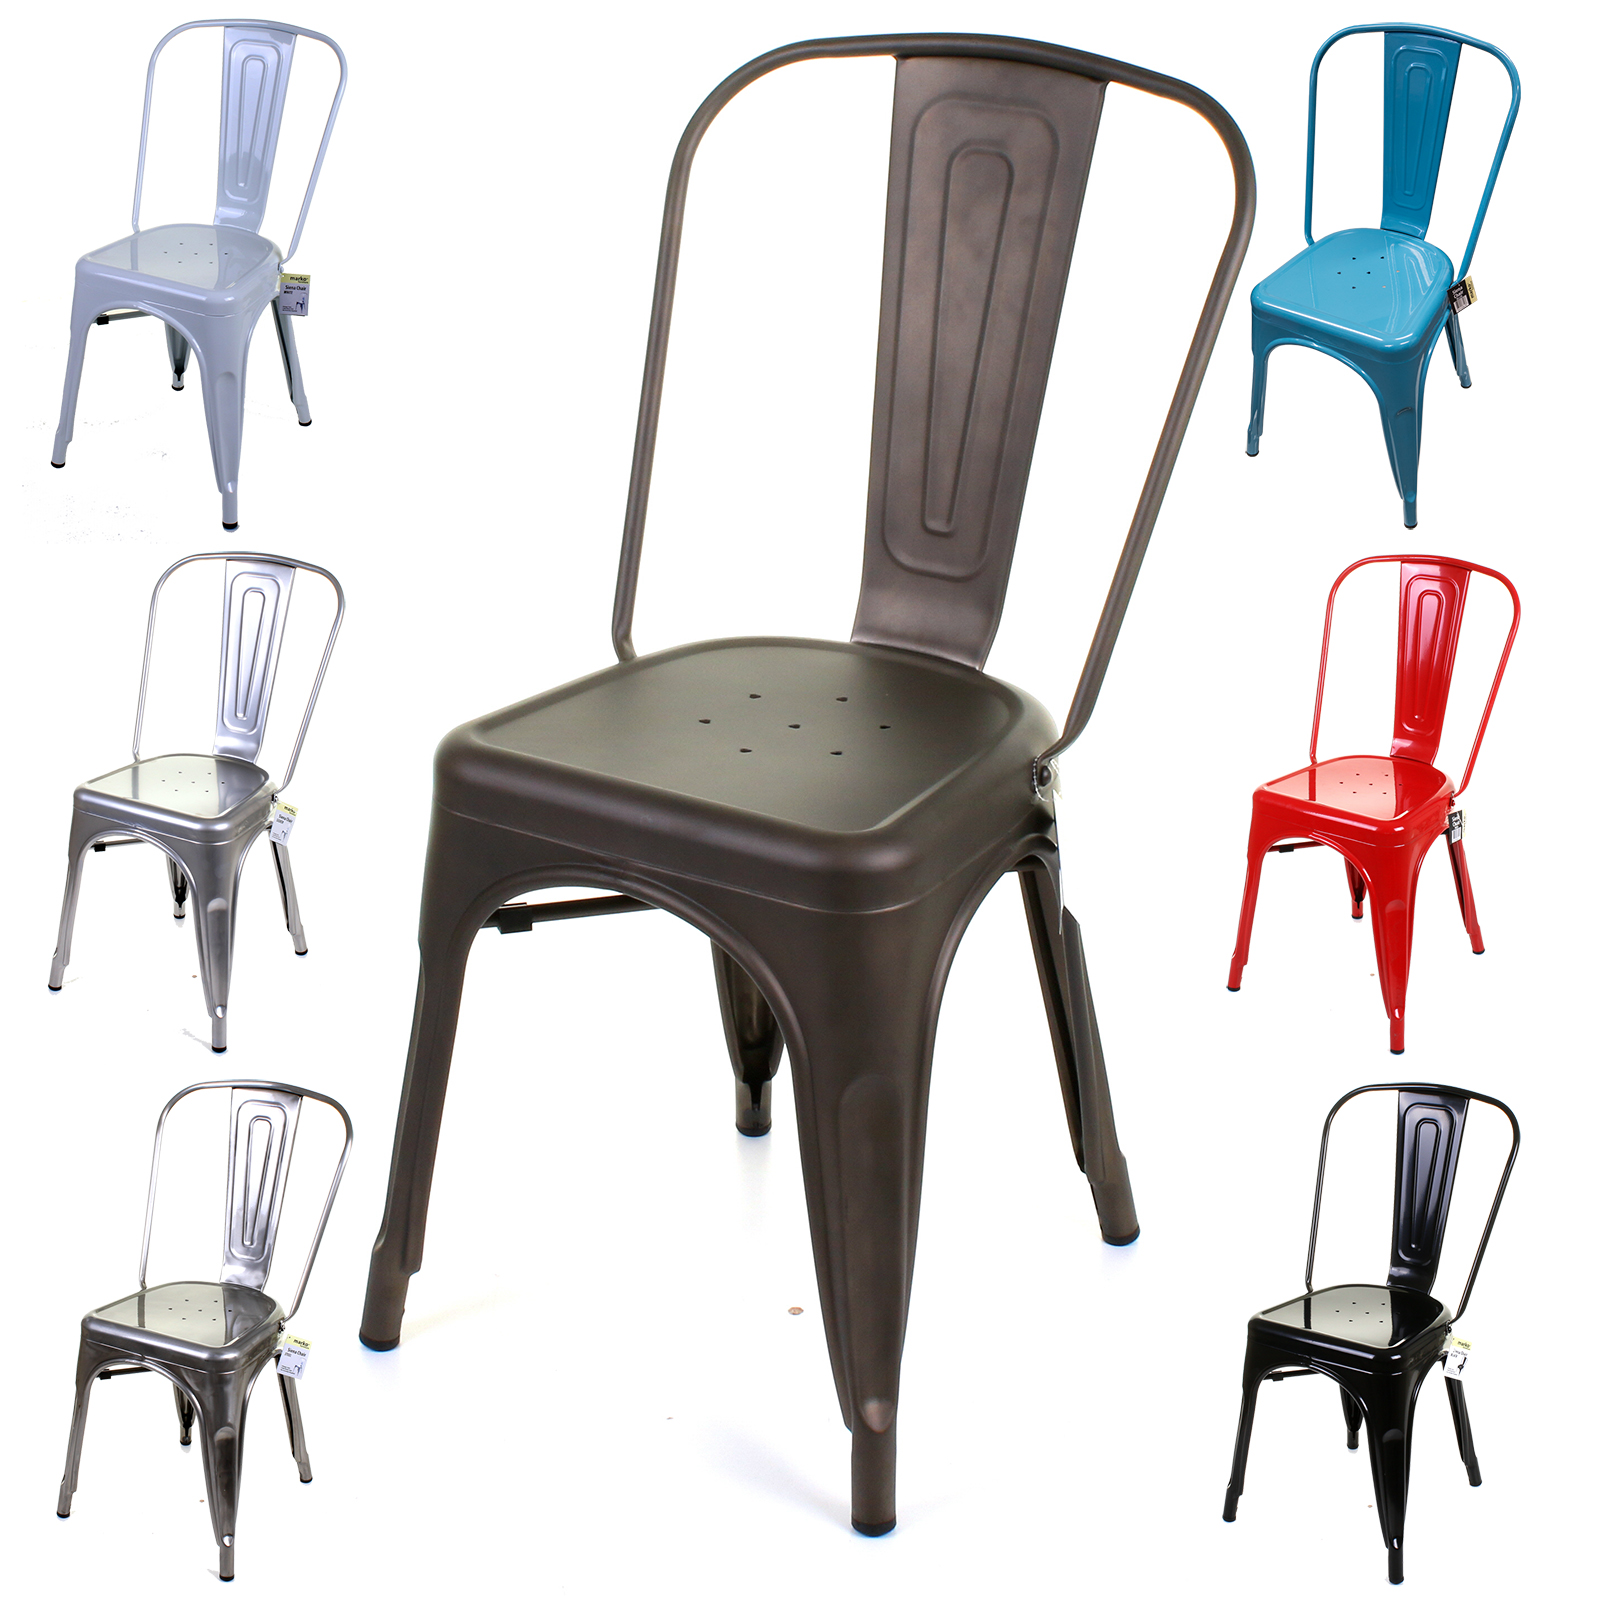 Metal Kitchen Chairs: Metal Dining Chair Stackable Industrial Vintage Style Seat